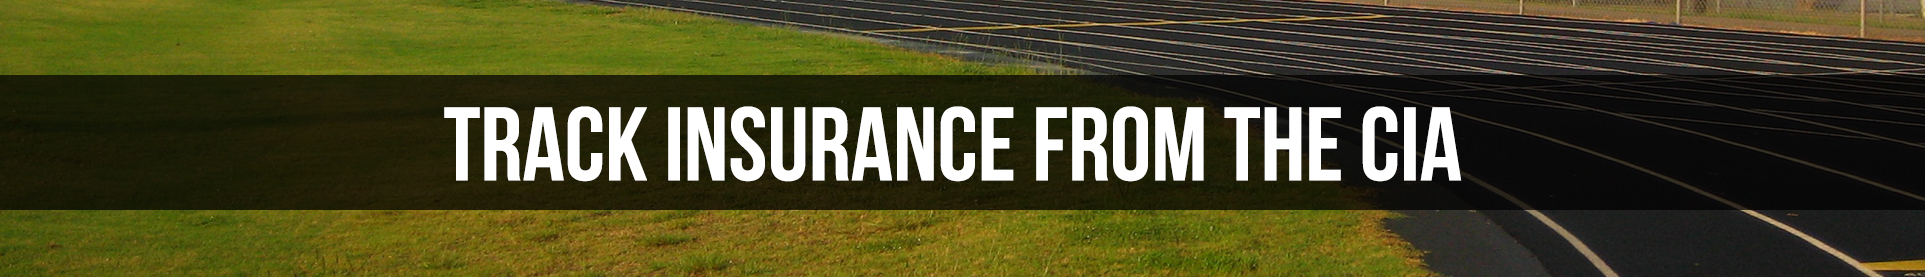 Insurance for Track & Cross Country from the CIA